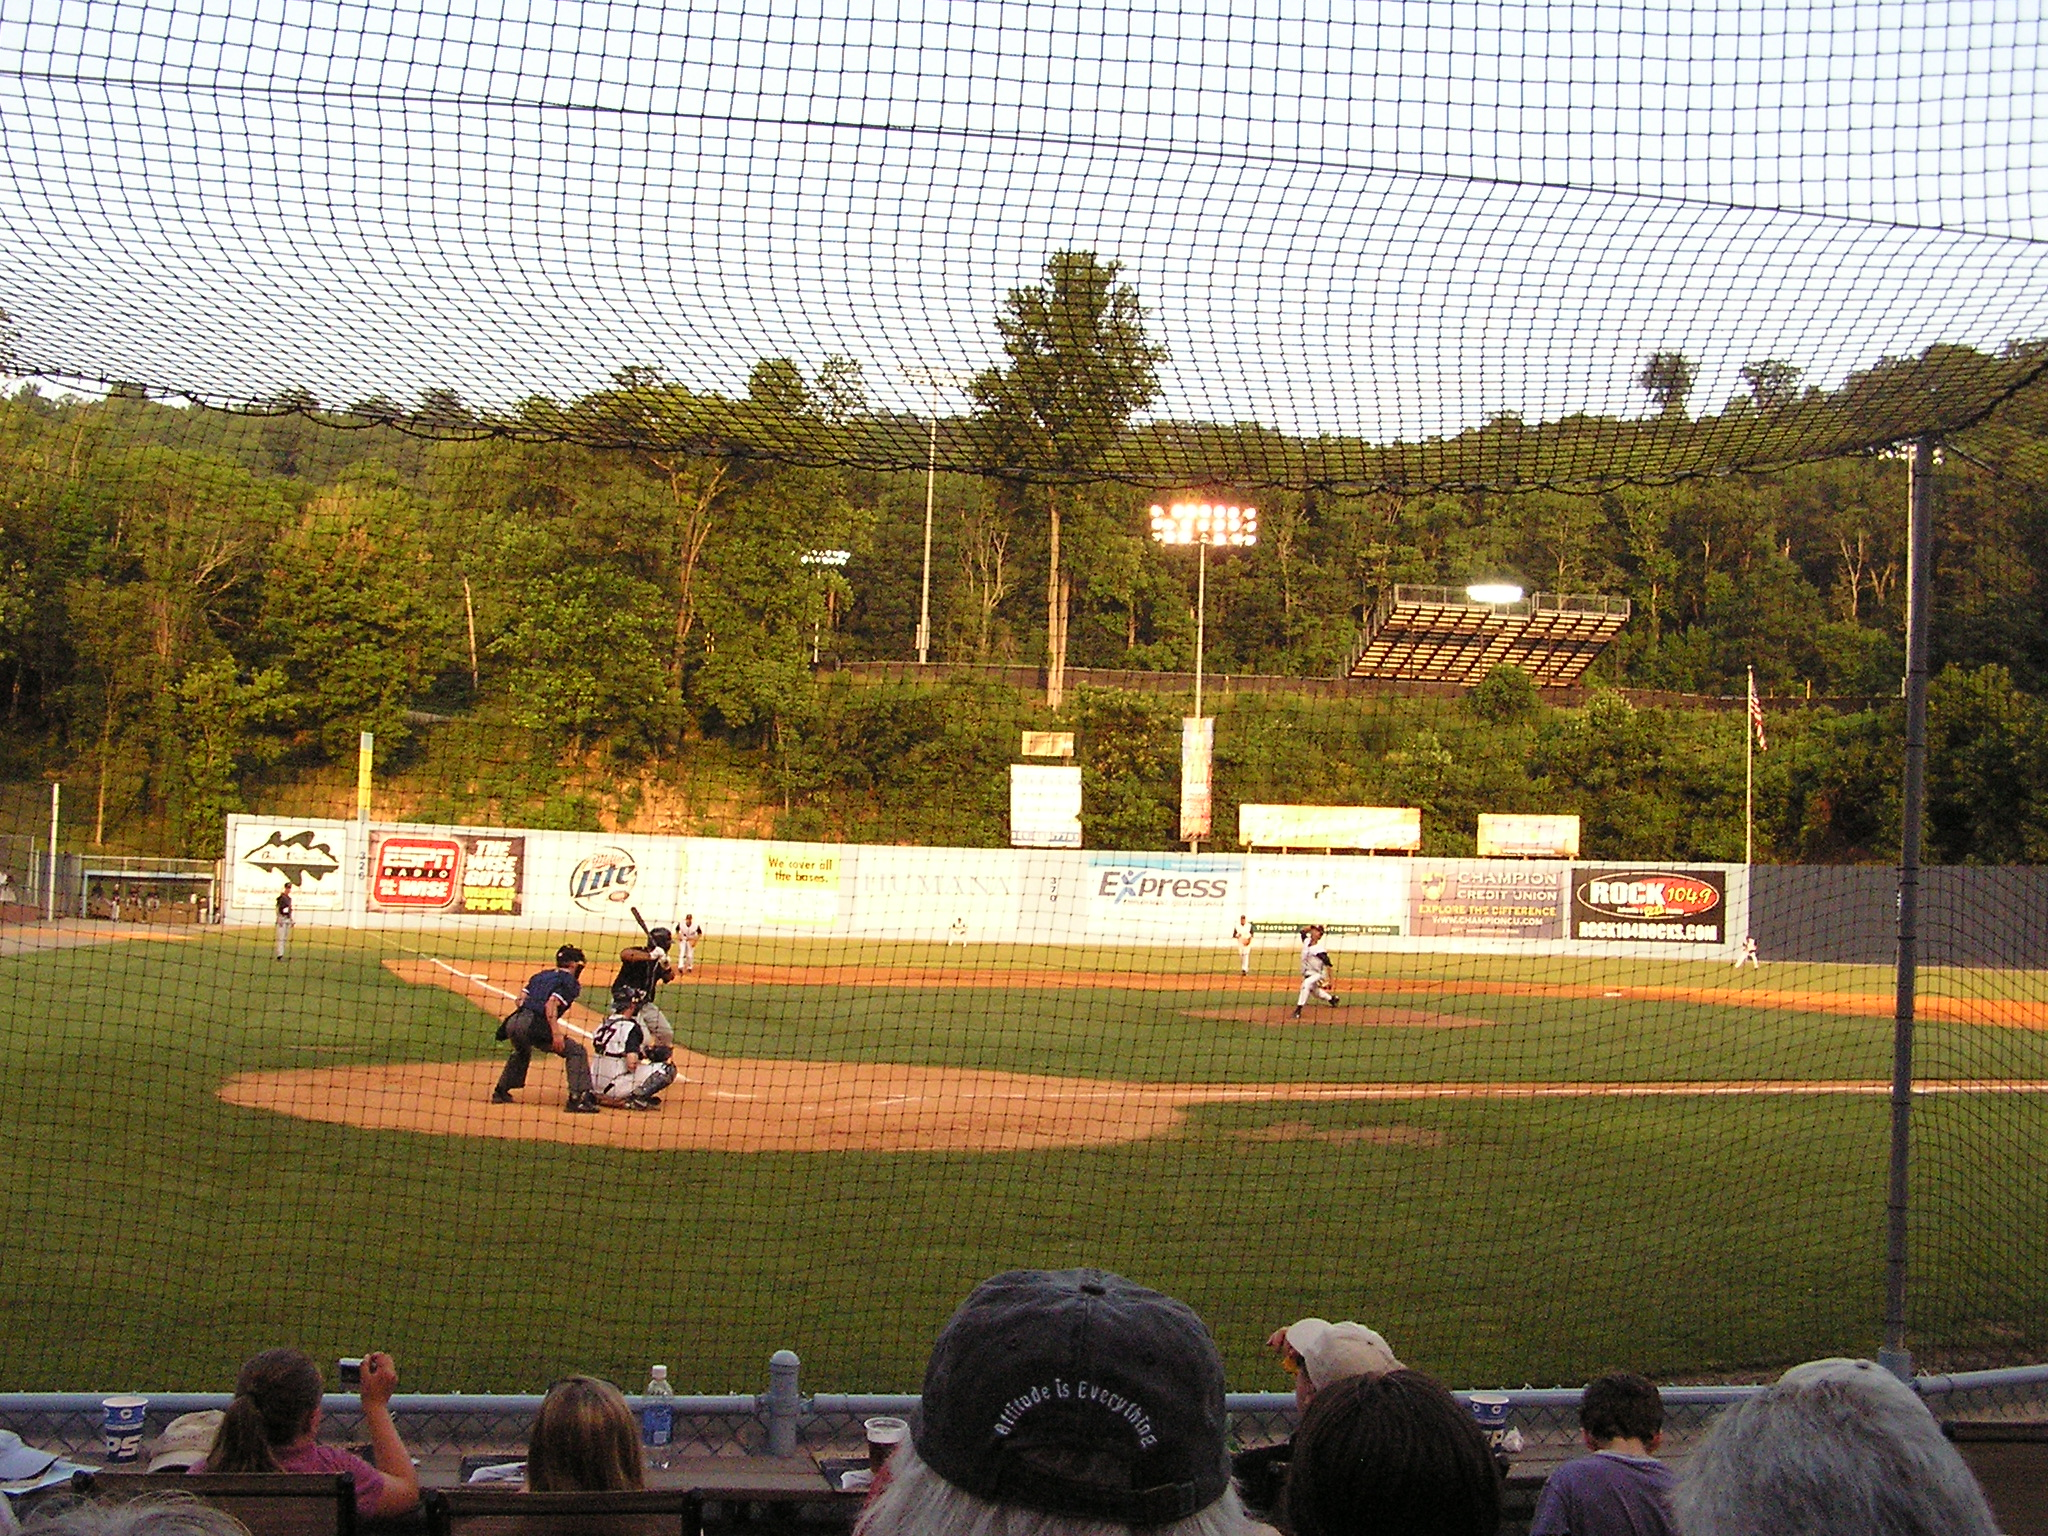 The Pitch, McCormick Field, Asheville, NC